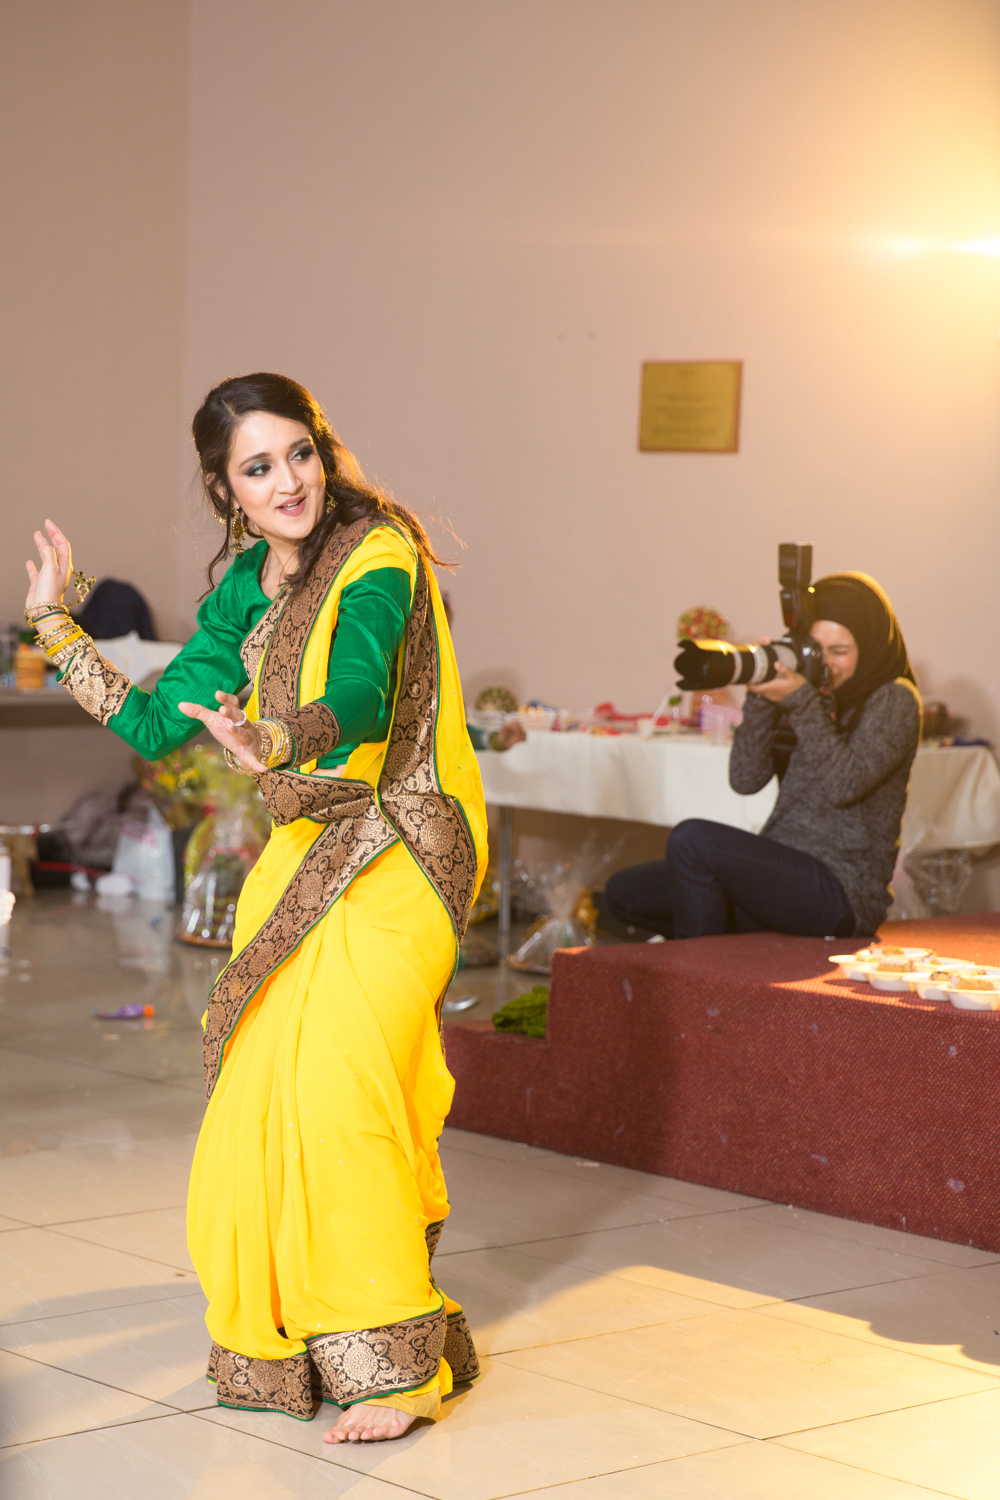 Emon Mehendi Party Opu Sultan Photography Off Camera Flash-16.jpg